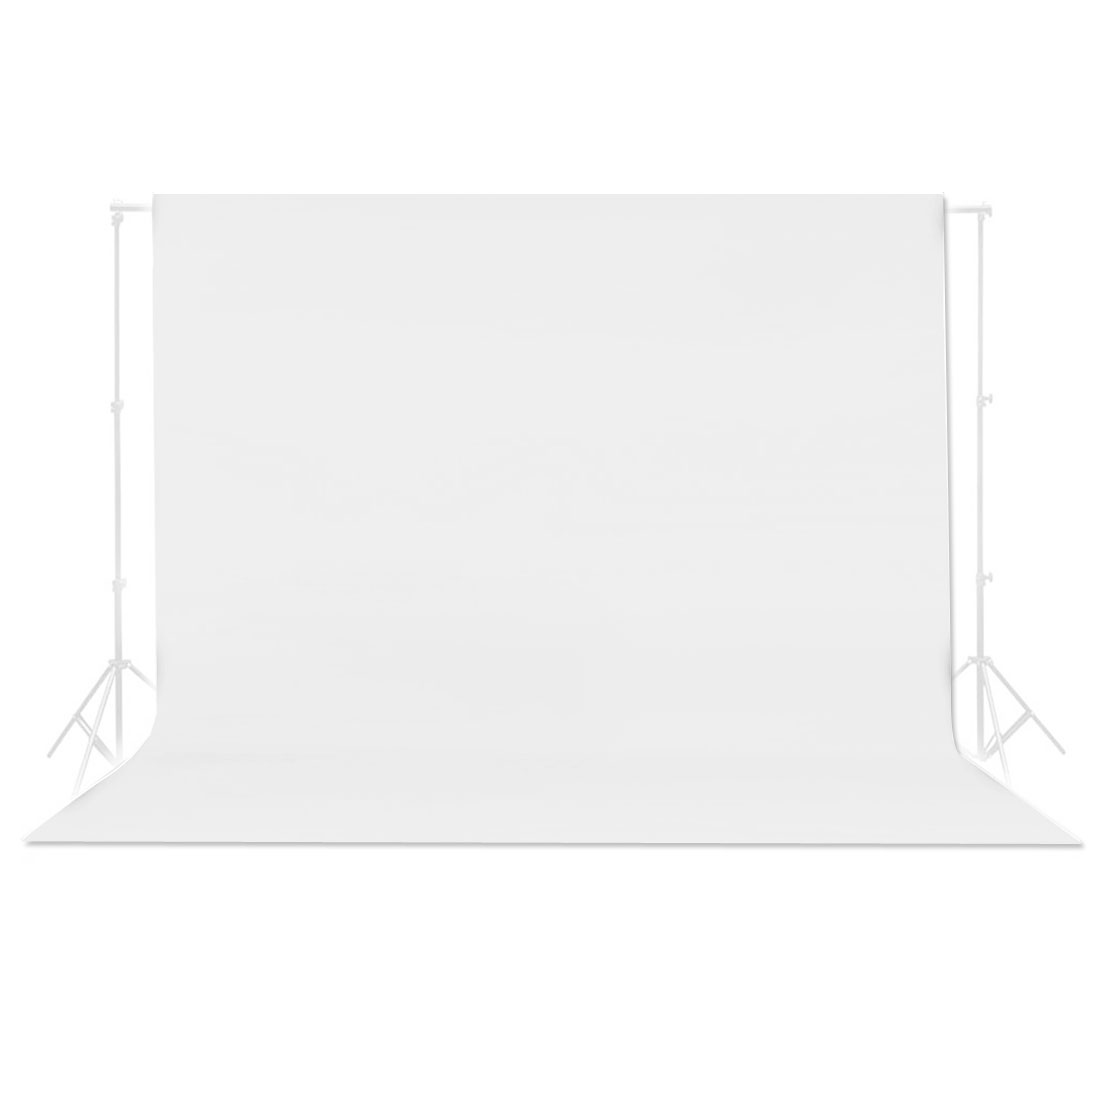 3.3Ftx10Ft White Non-woven Fabric Photography Backdrop Background Cloth